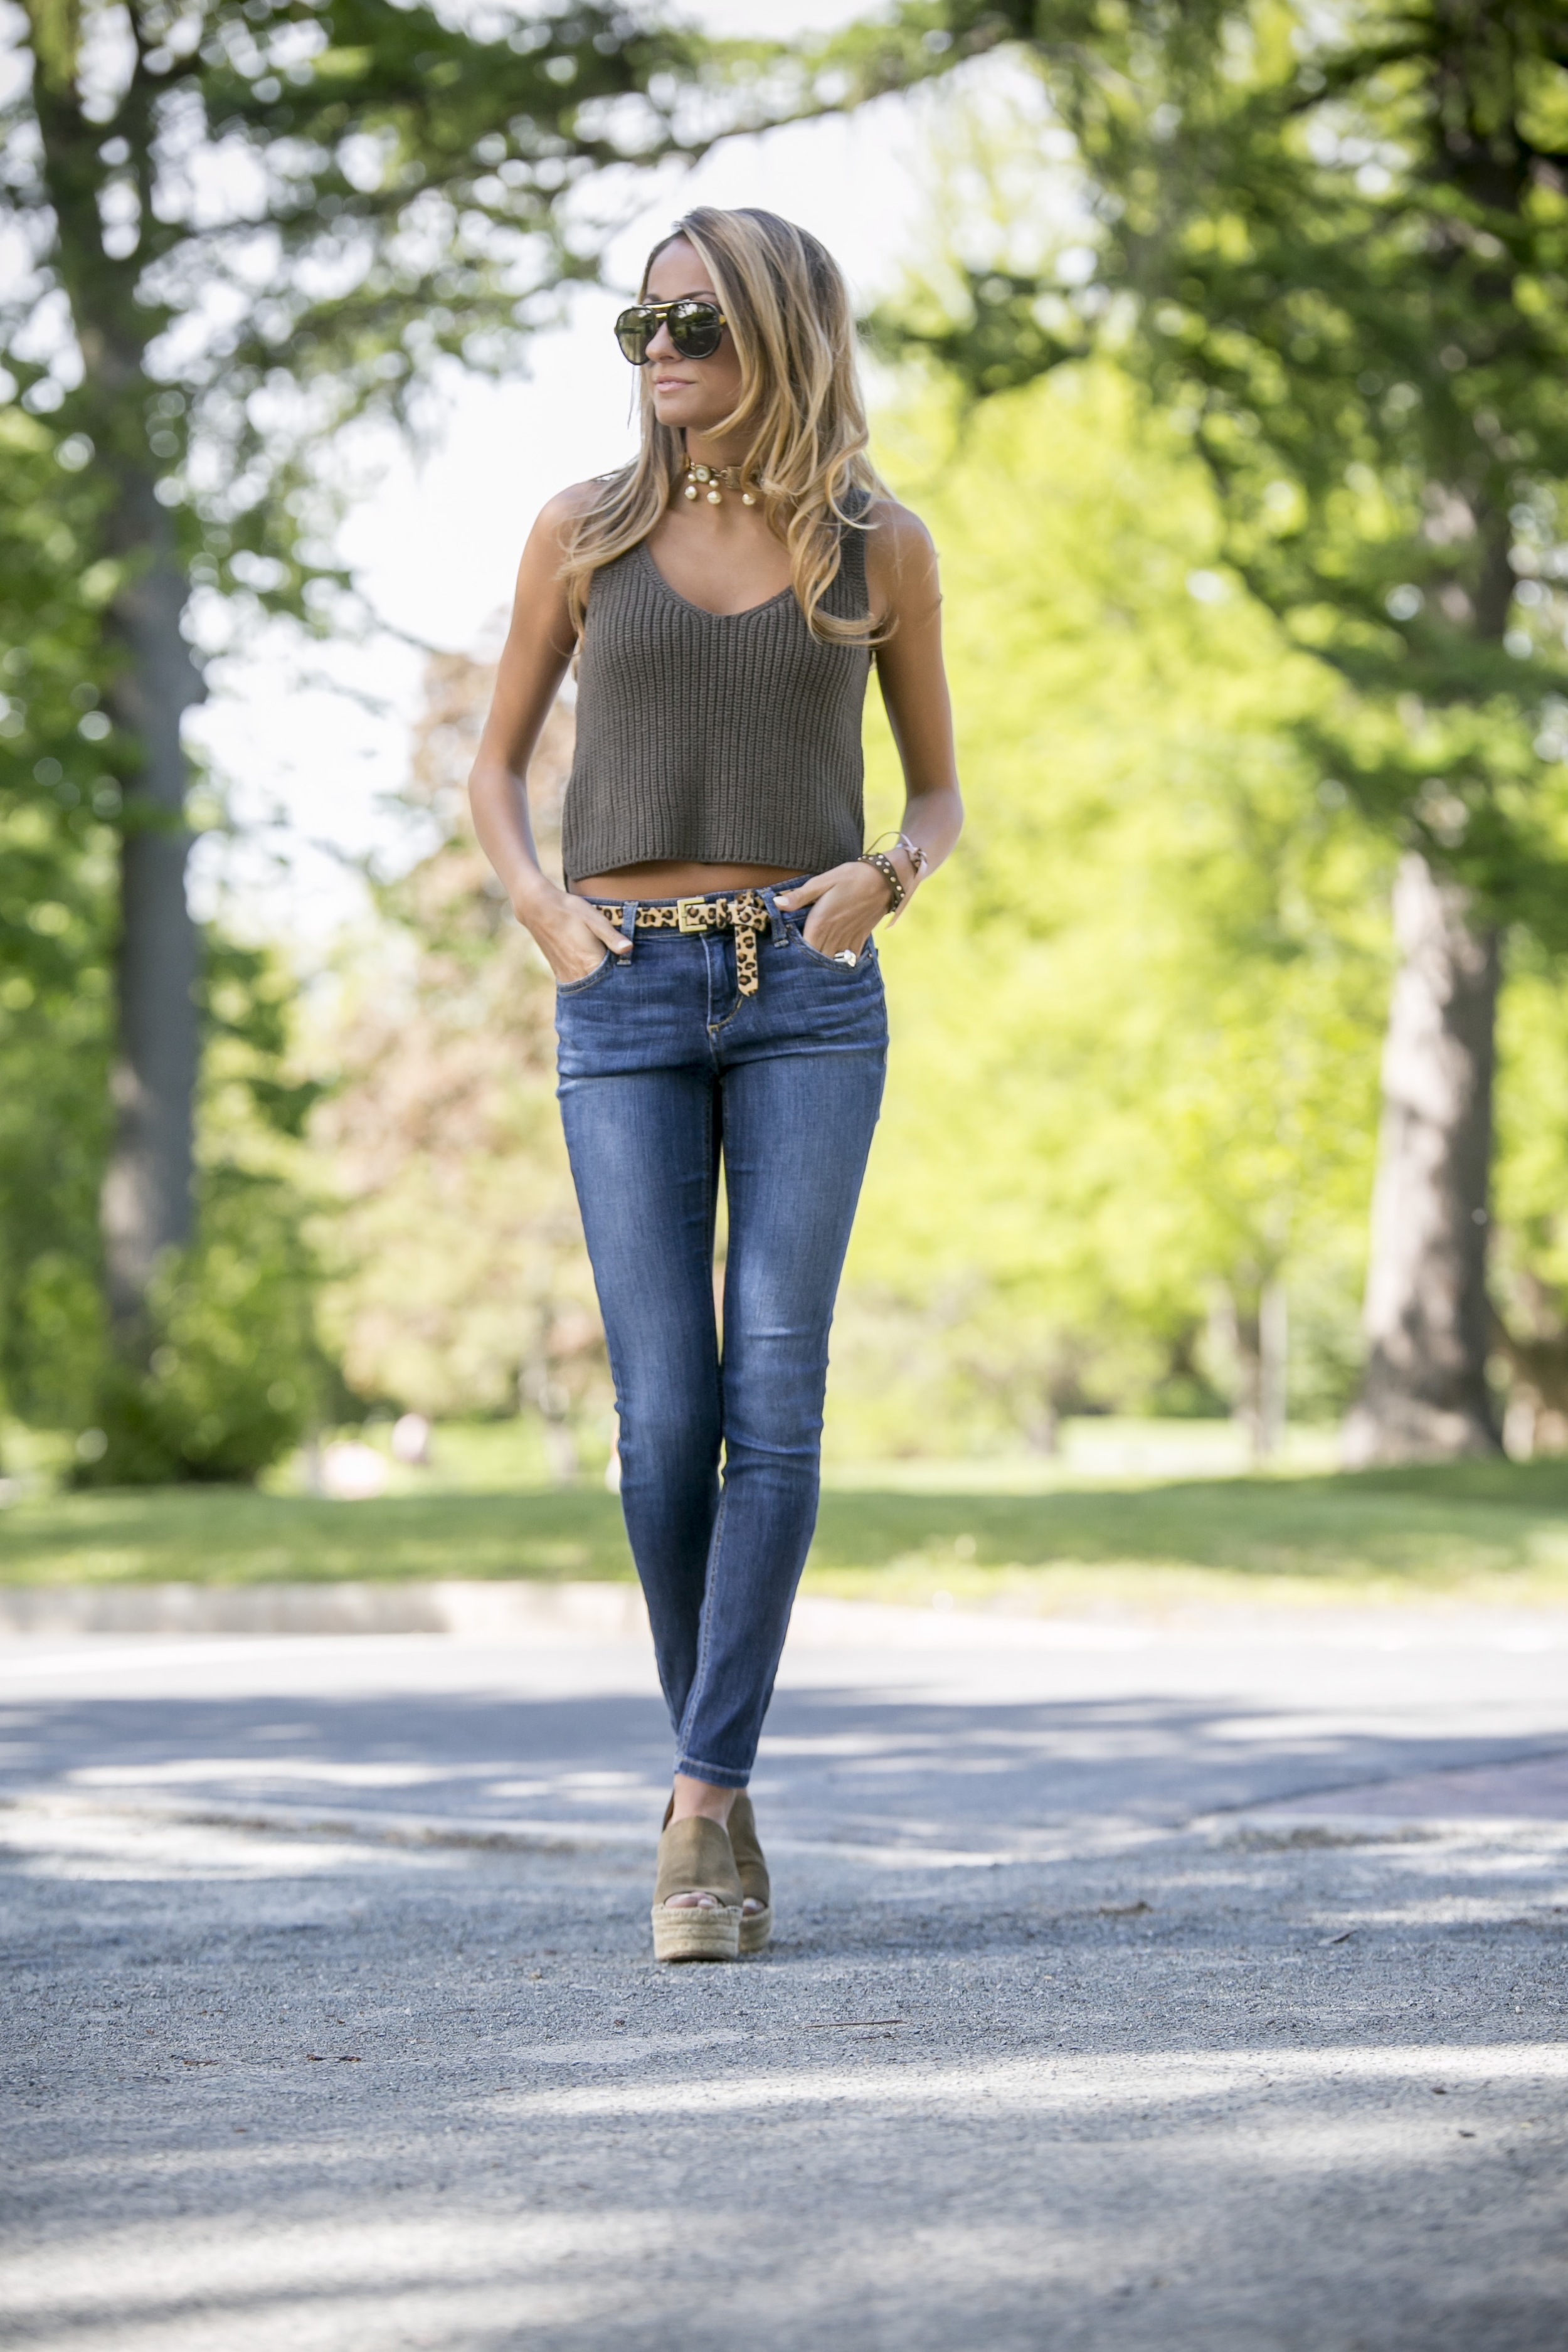 knit crop top exclusive for intermix from the intermix sale worn with jeans and olive green chloe wedges